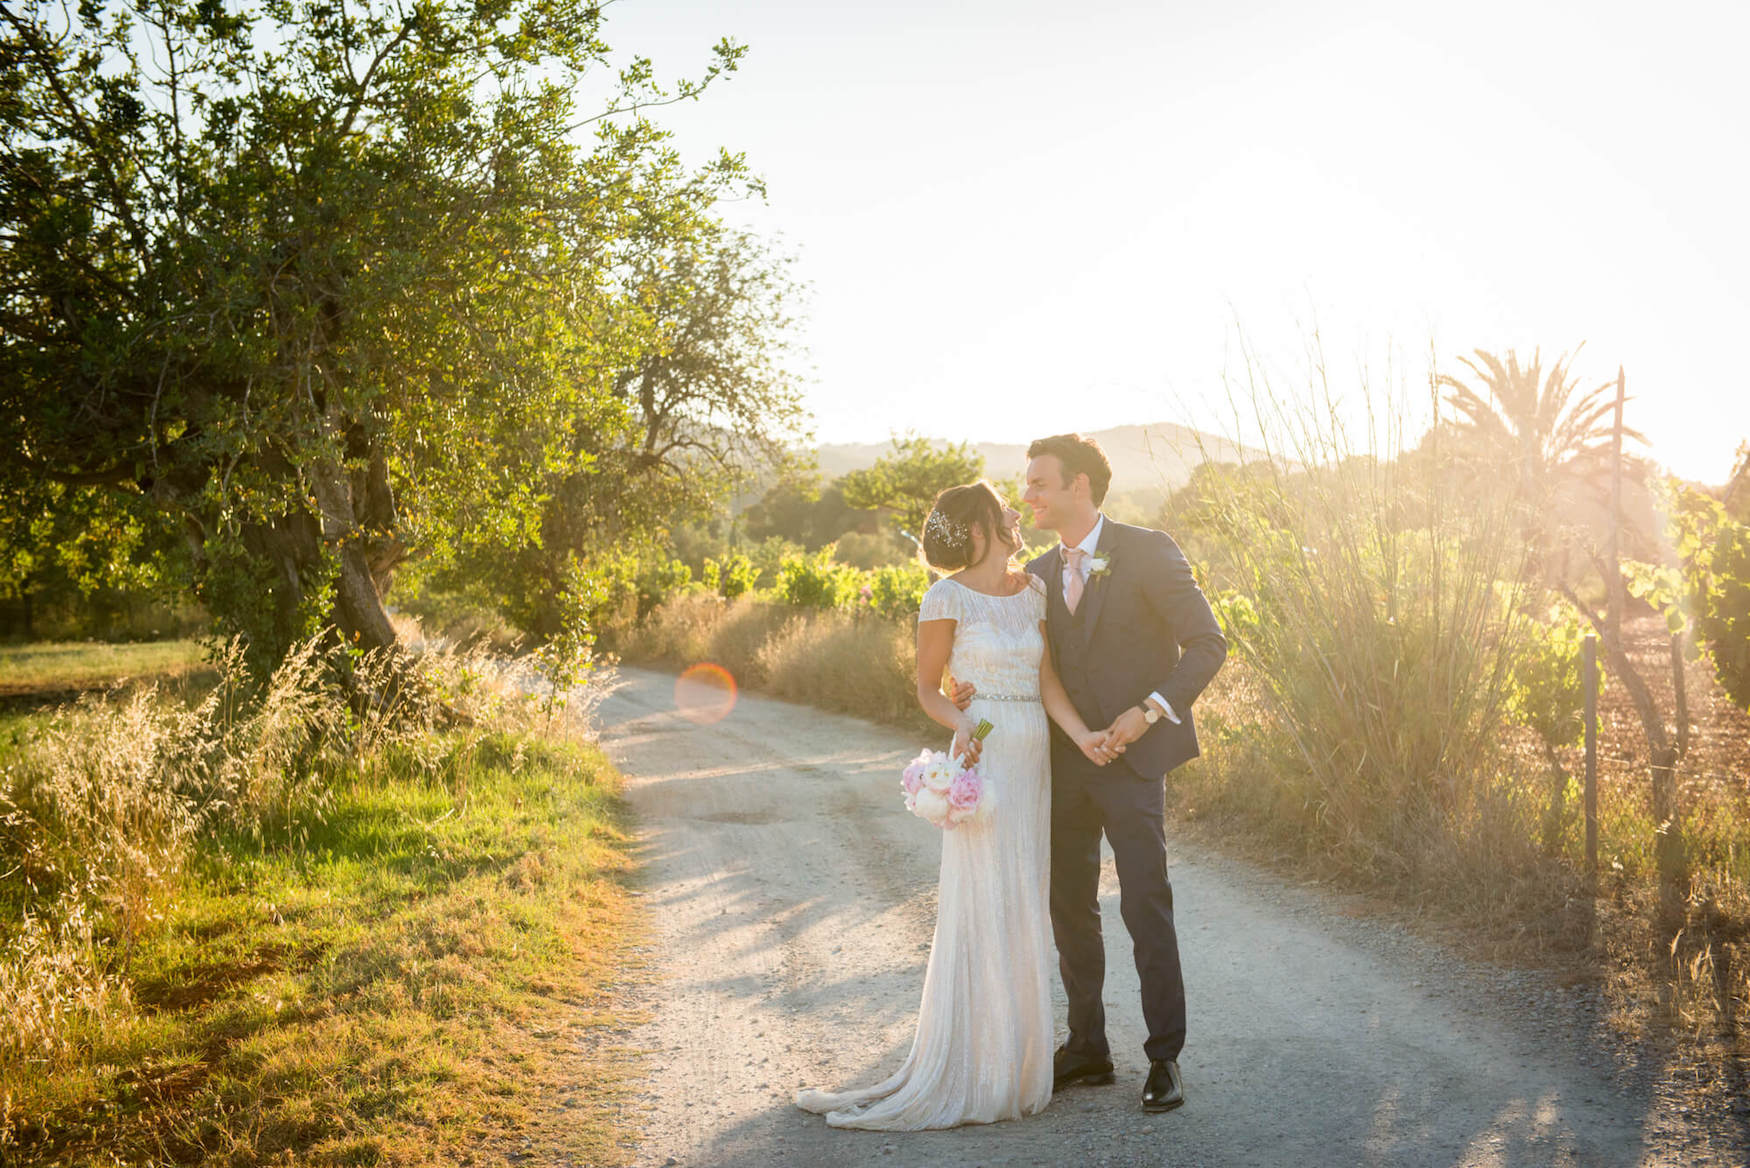 bride groom dance country path campo camino carob tree sunset light